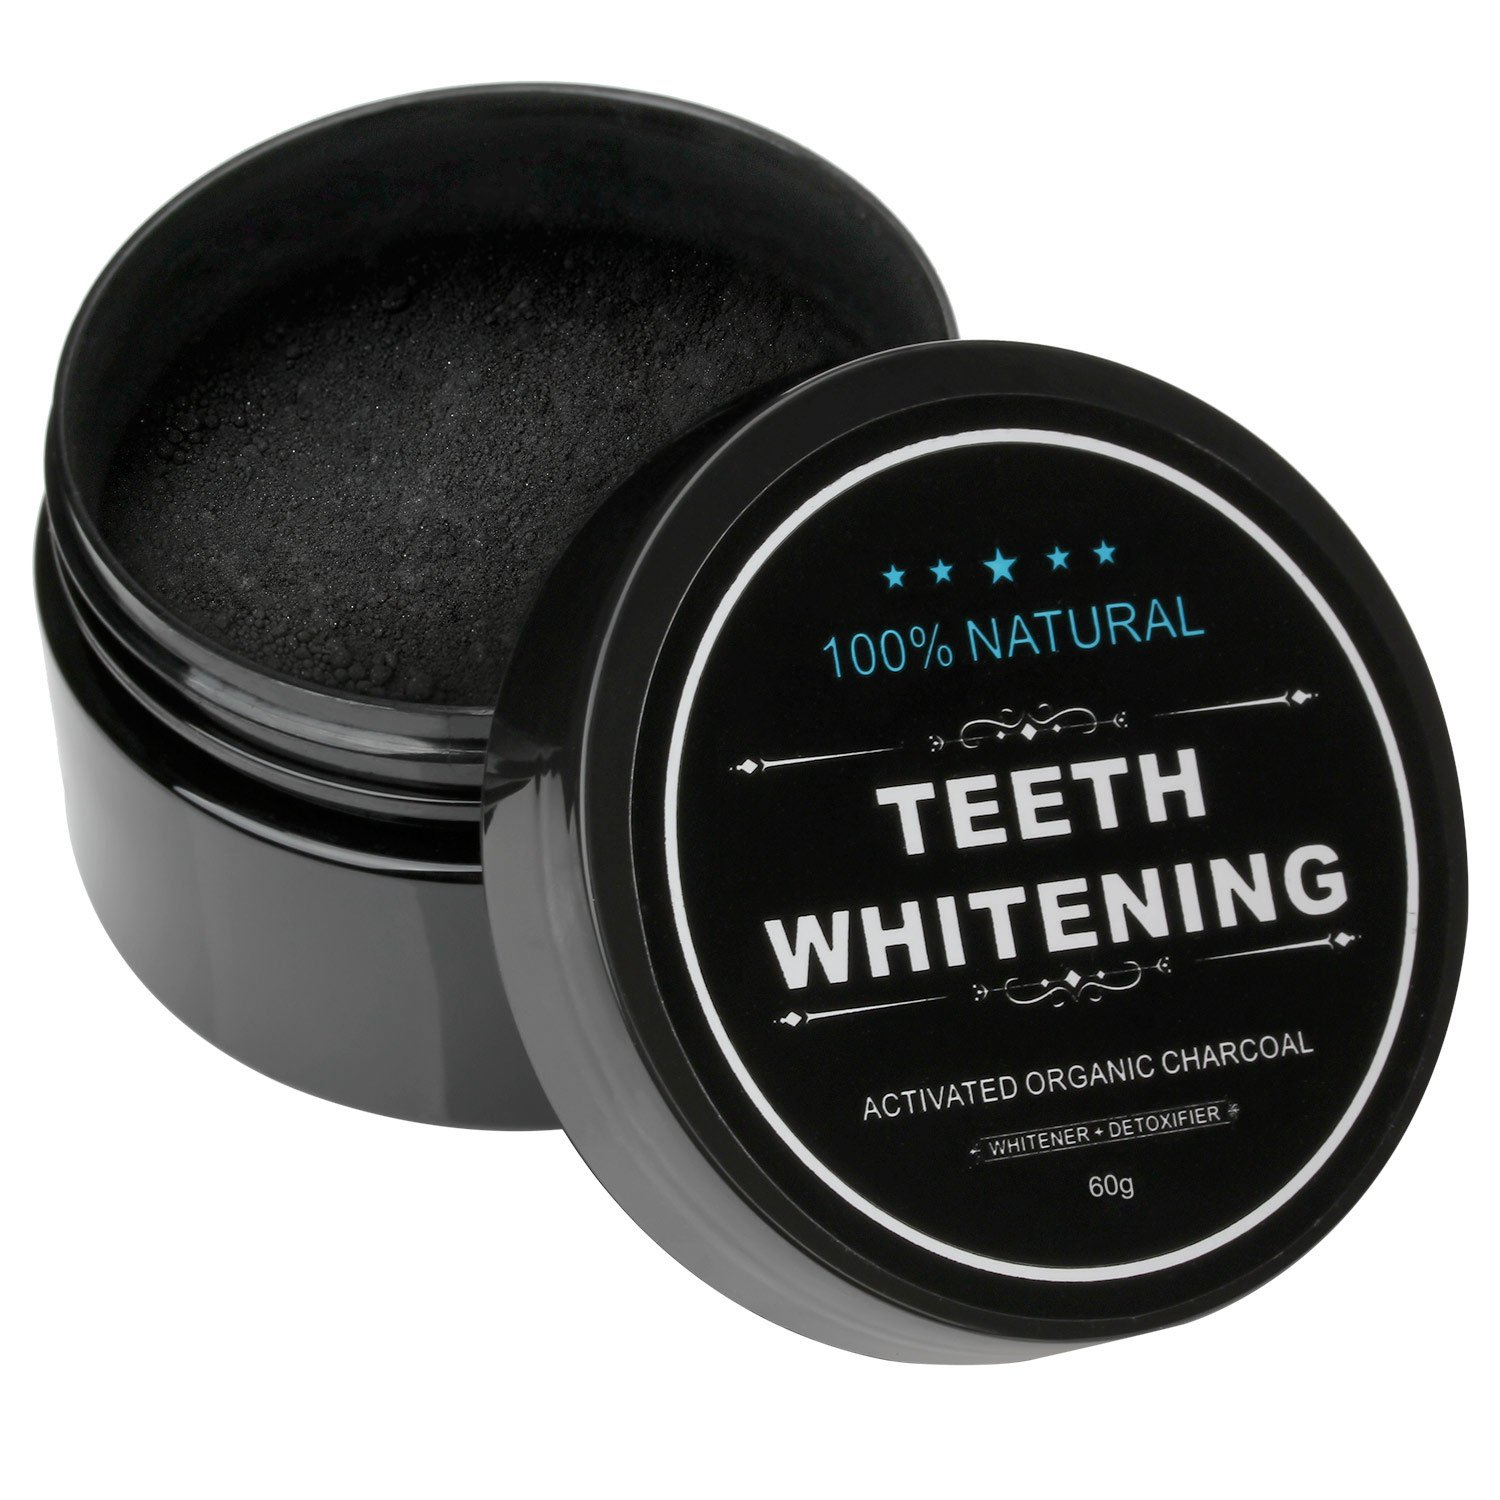 Natural Teeth Whitening Activated Organic charcoal Powder